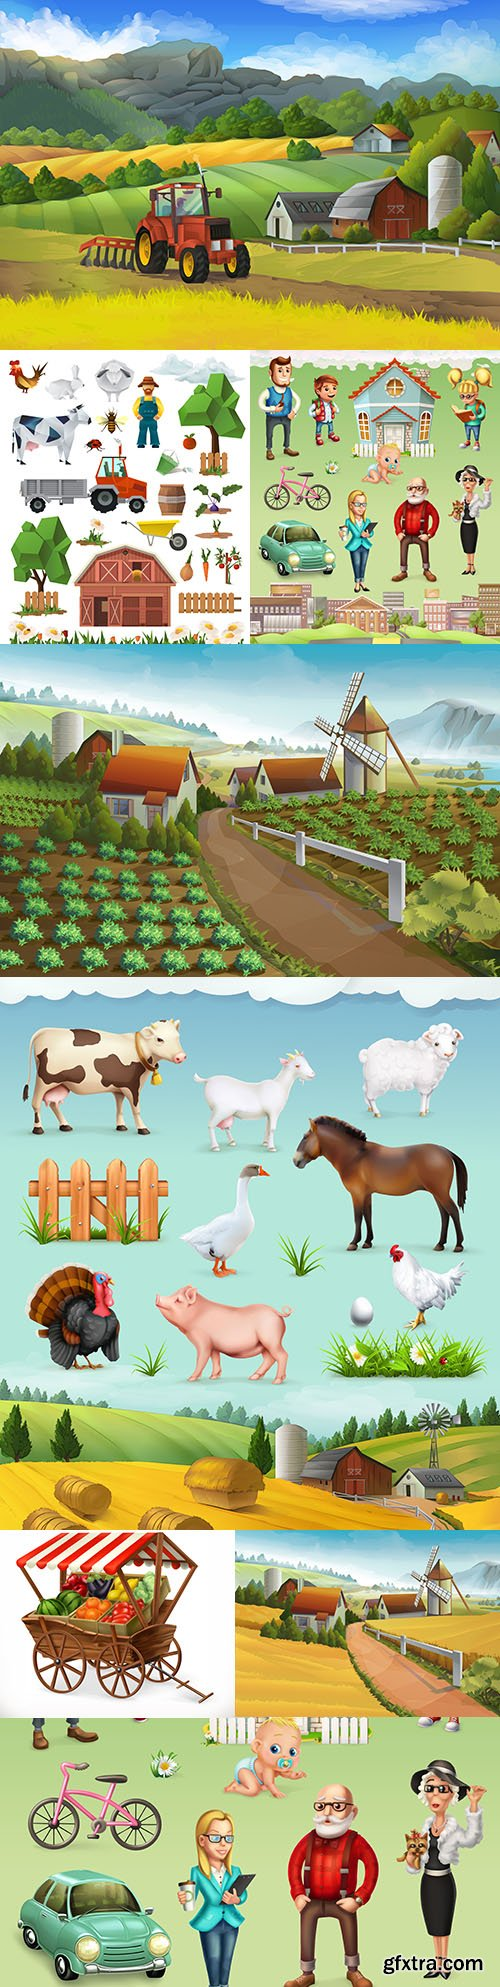 Farm and animal rural landscape vector illustrations